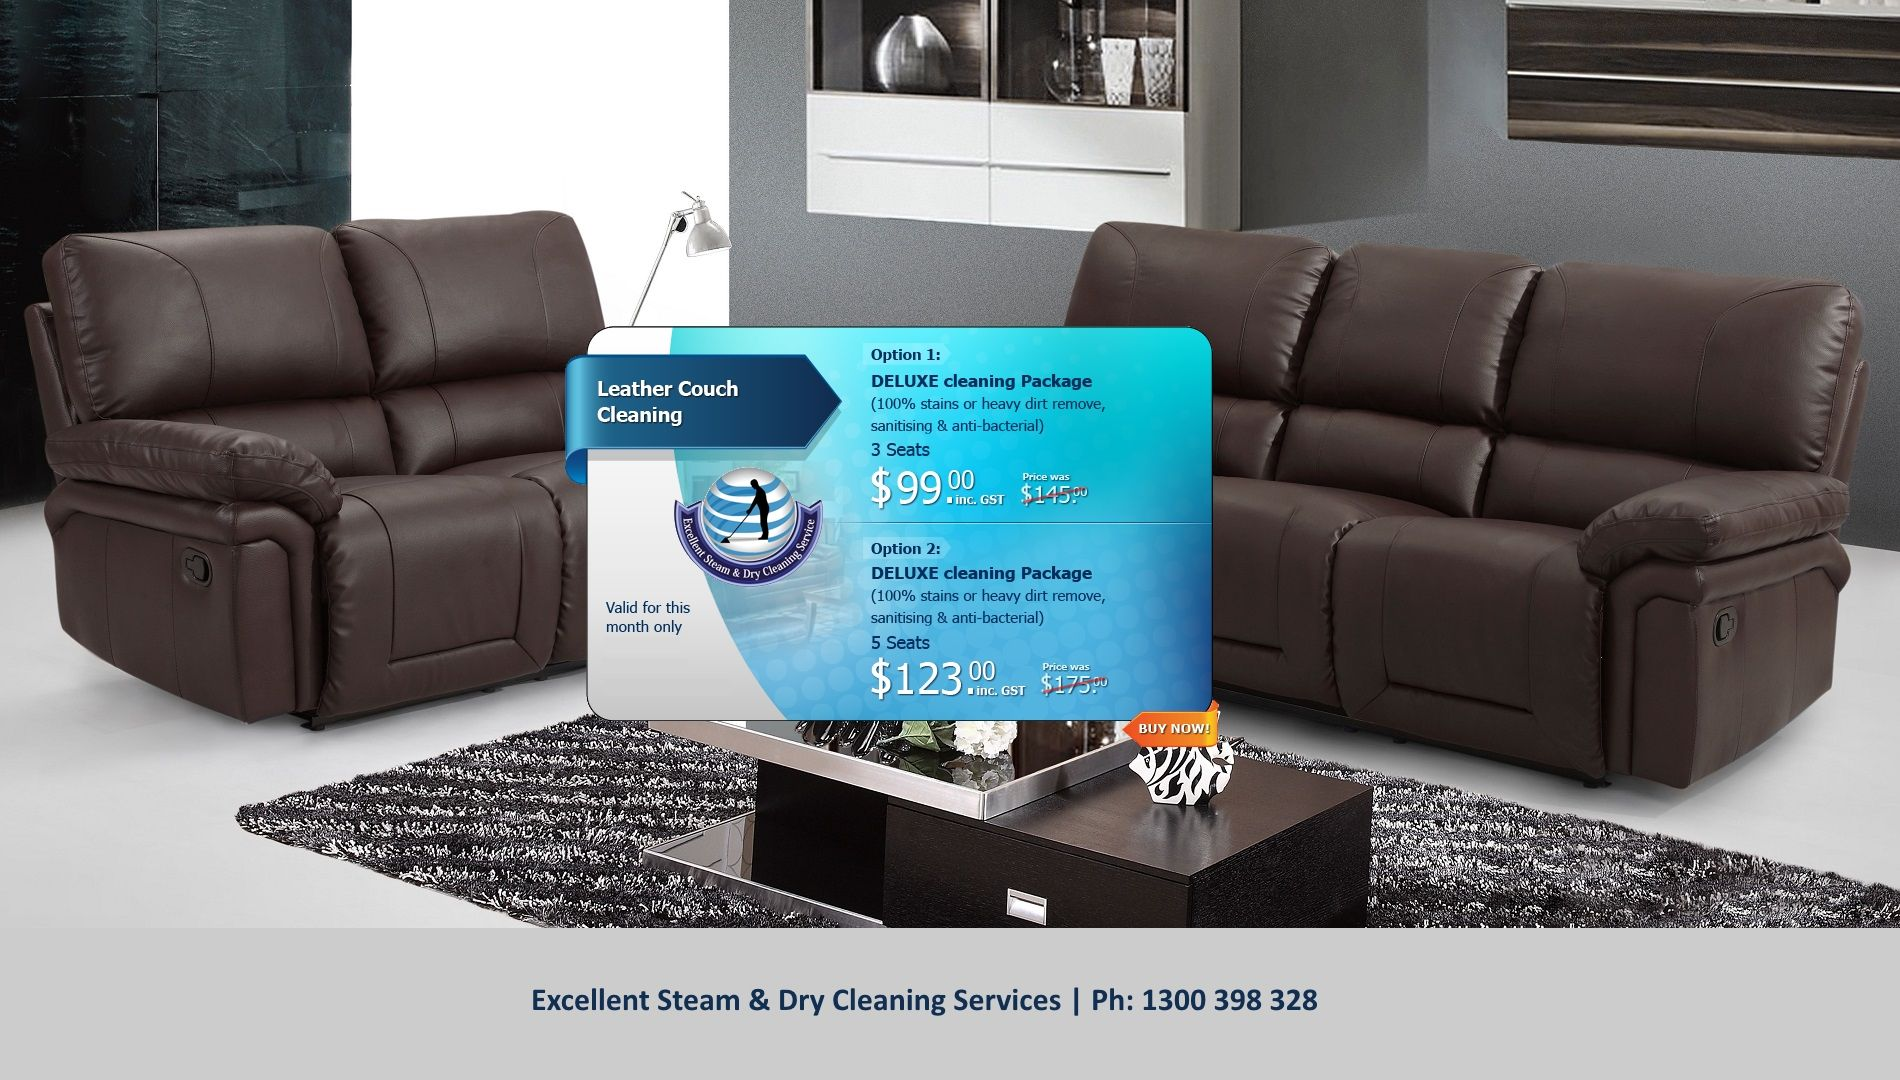 Pleasant Sofa Couch Upholstery Cleaning Call 1300 398 328 Pabps2019 Chair Design Images Pabps2019Com